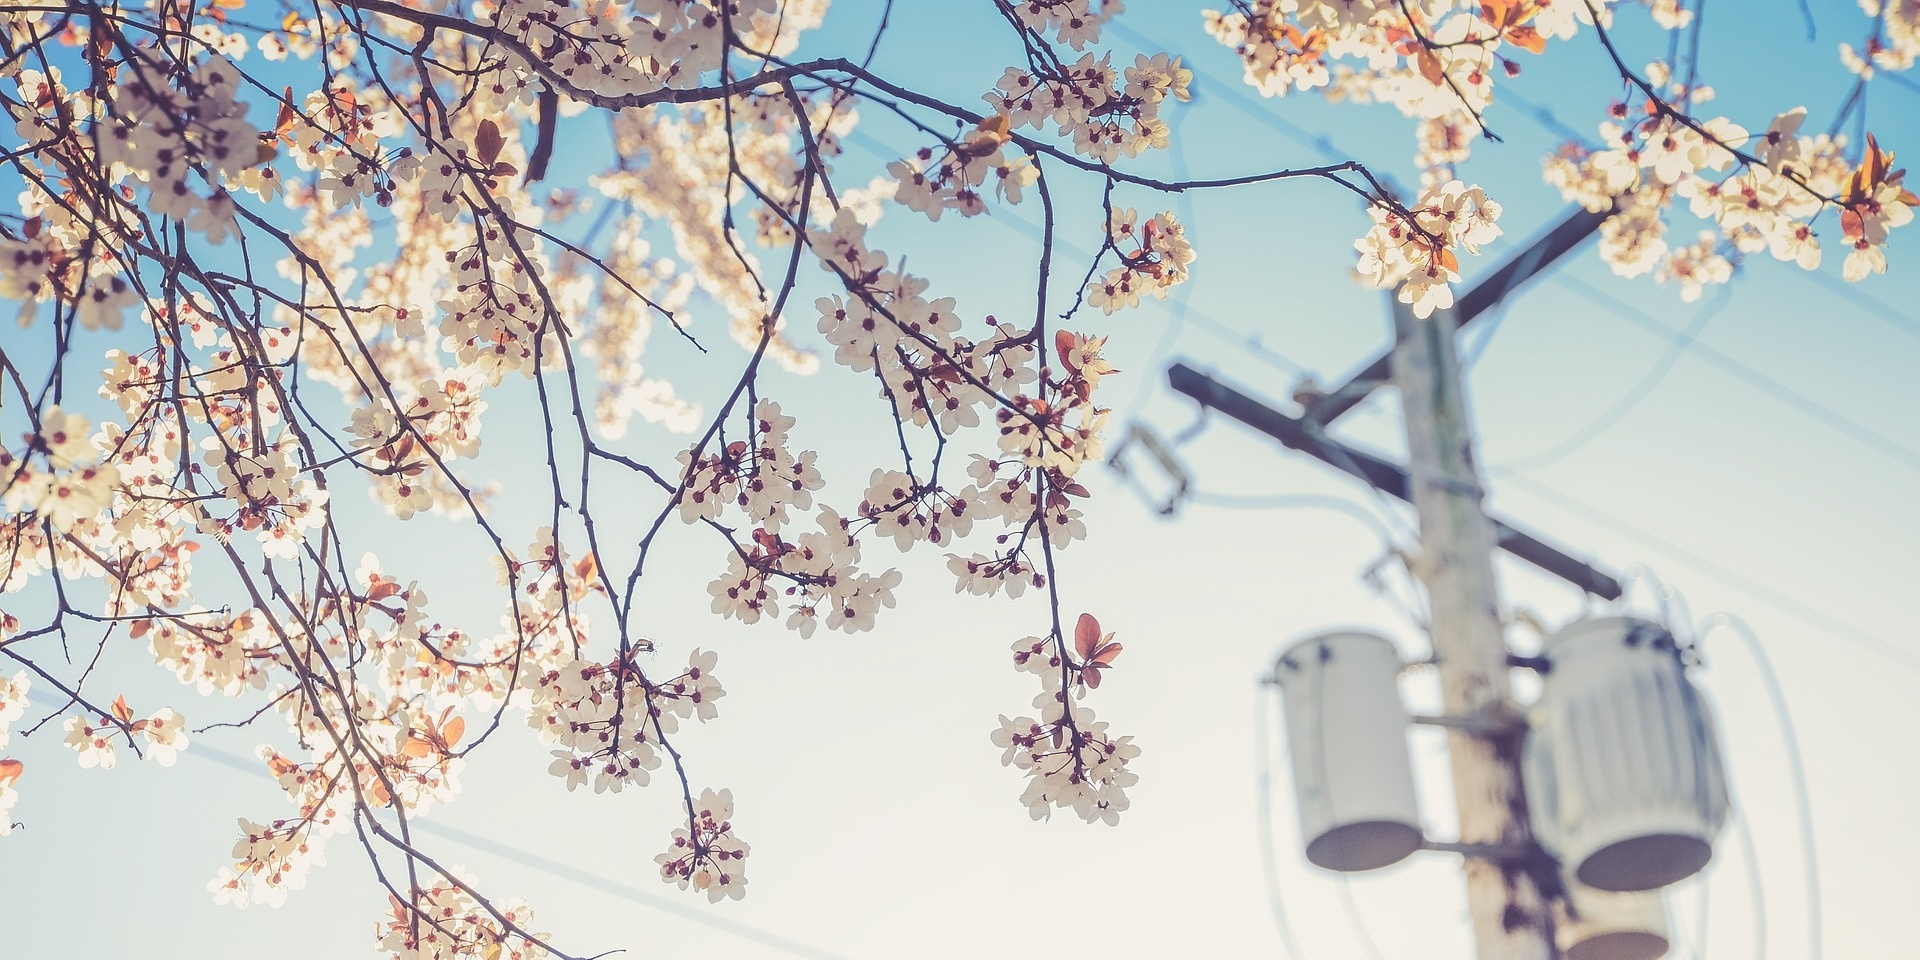 powerlines-flowers-240671-edited.jpg